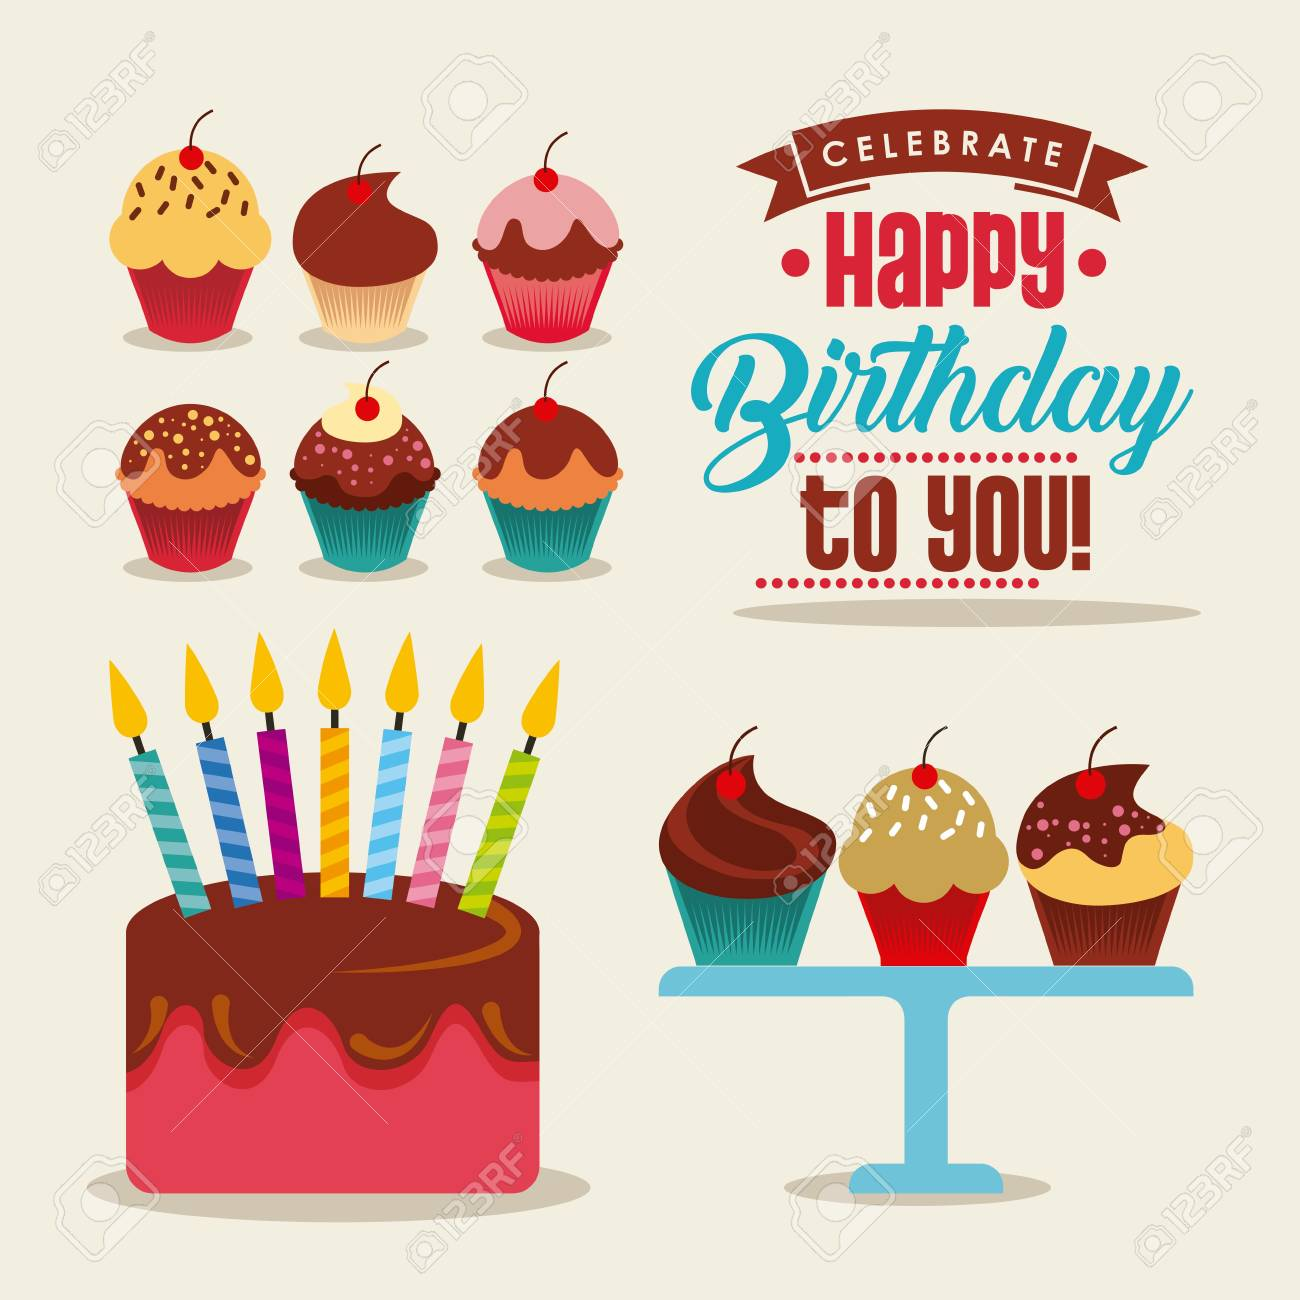 Happy Birthday Card With Sweet Cupcake And Cake With Candles